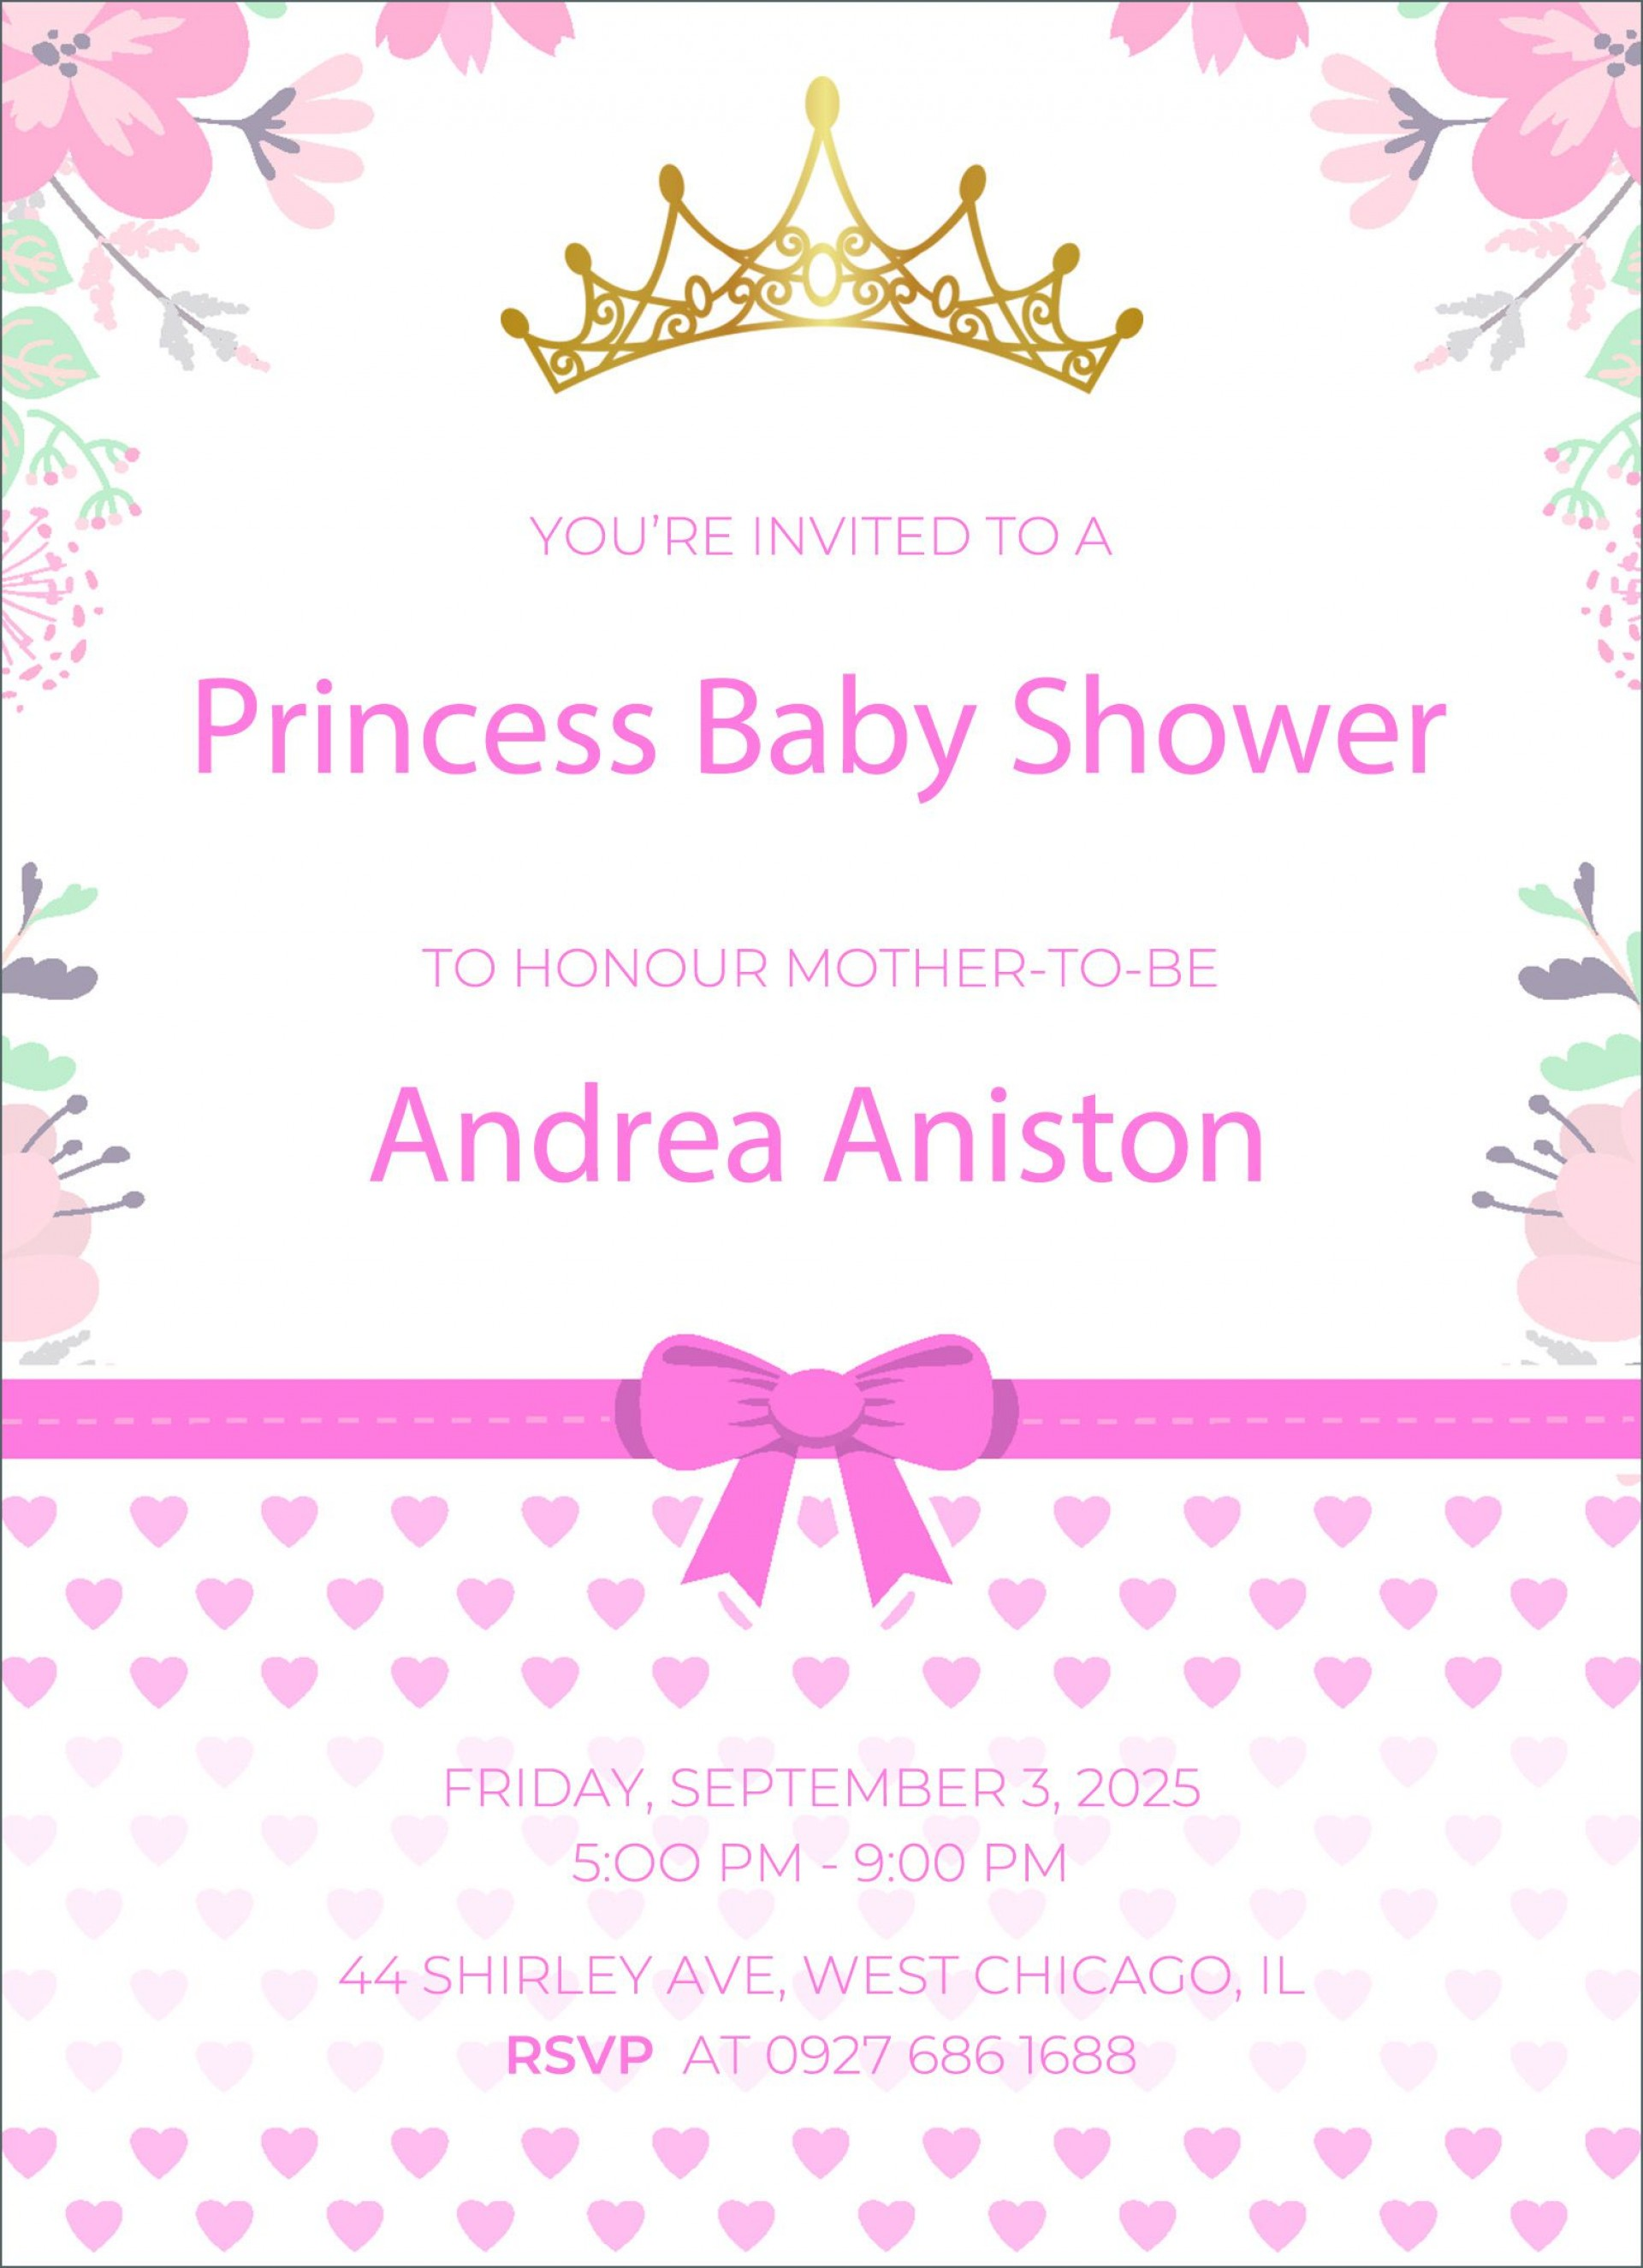 002 Impressive Free Baby Shower Invitation Template High Def  Printable Editable Microsoft Word To Print1920